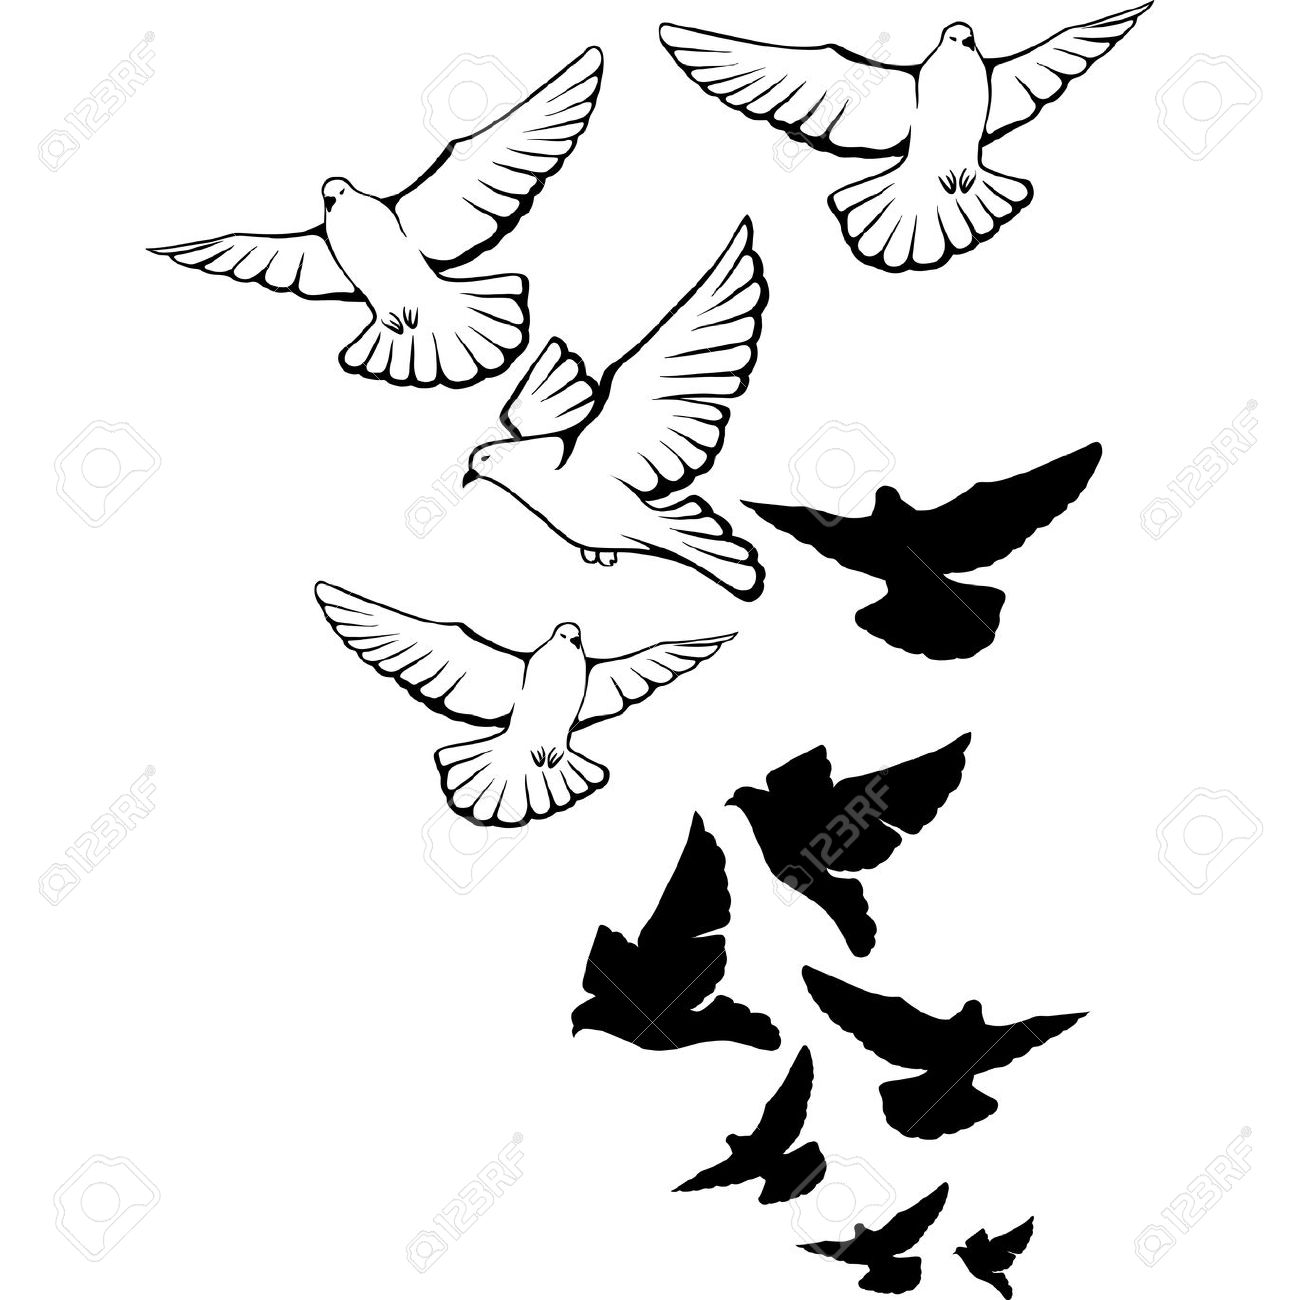 Pigeons flying in the sky clipart.